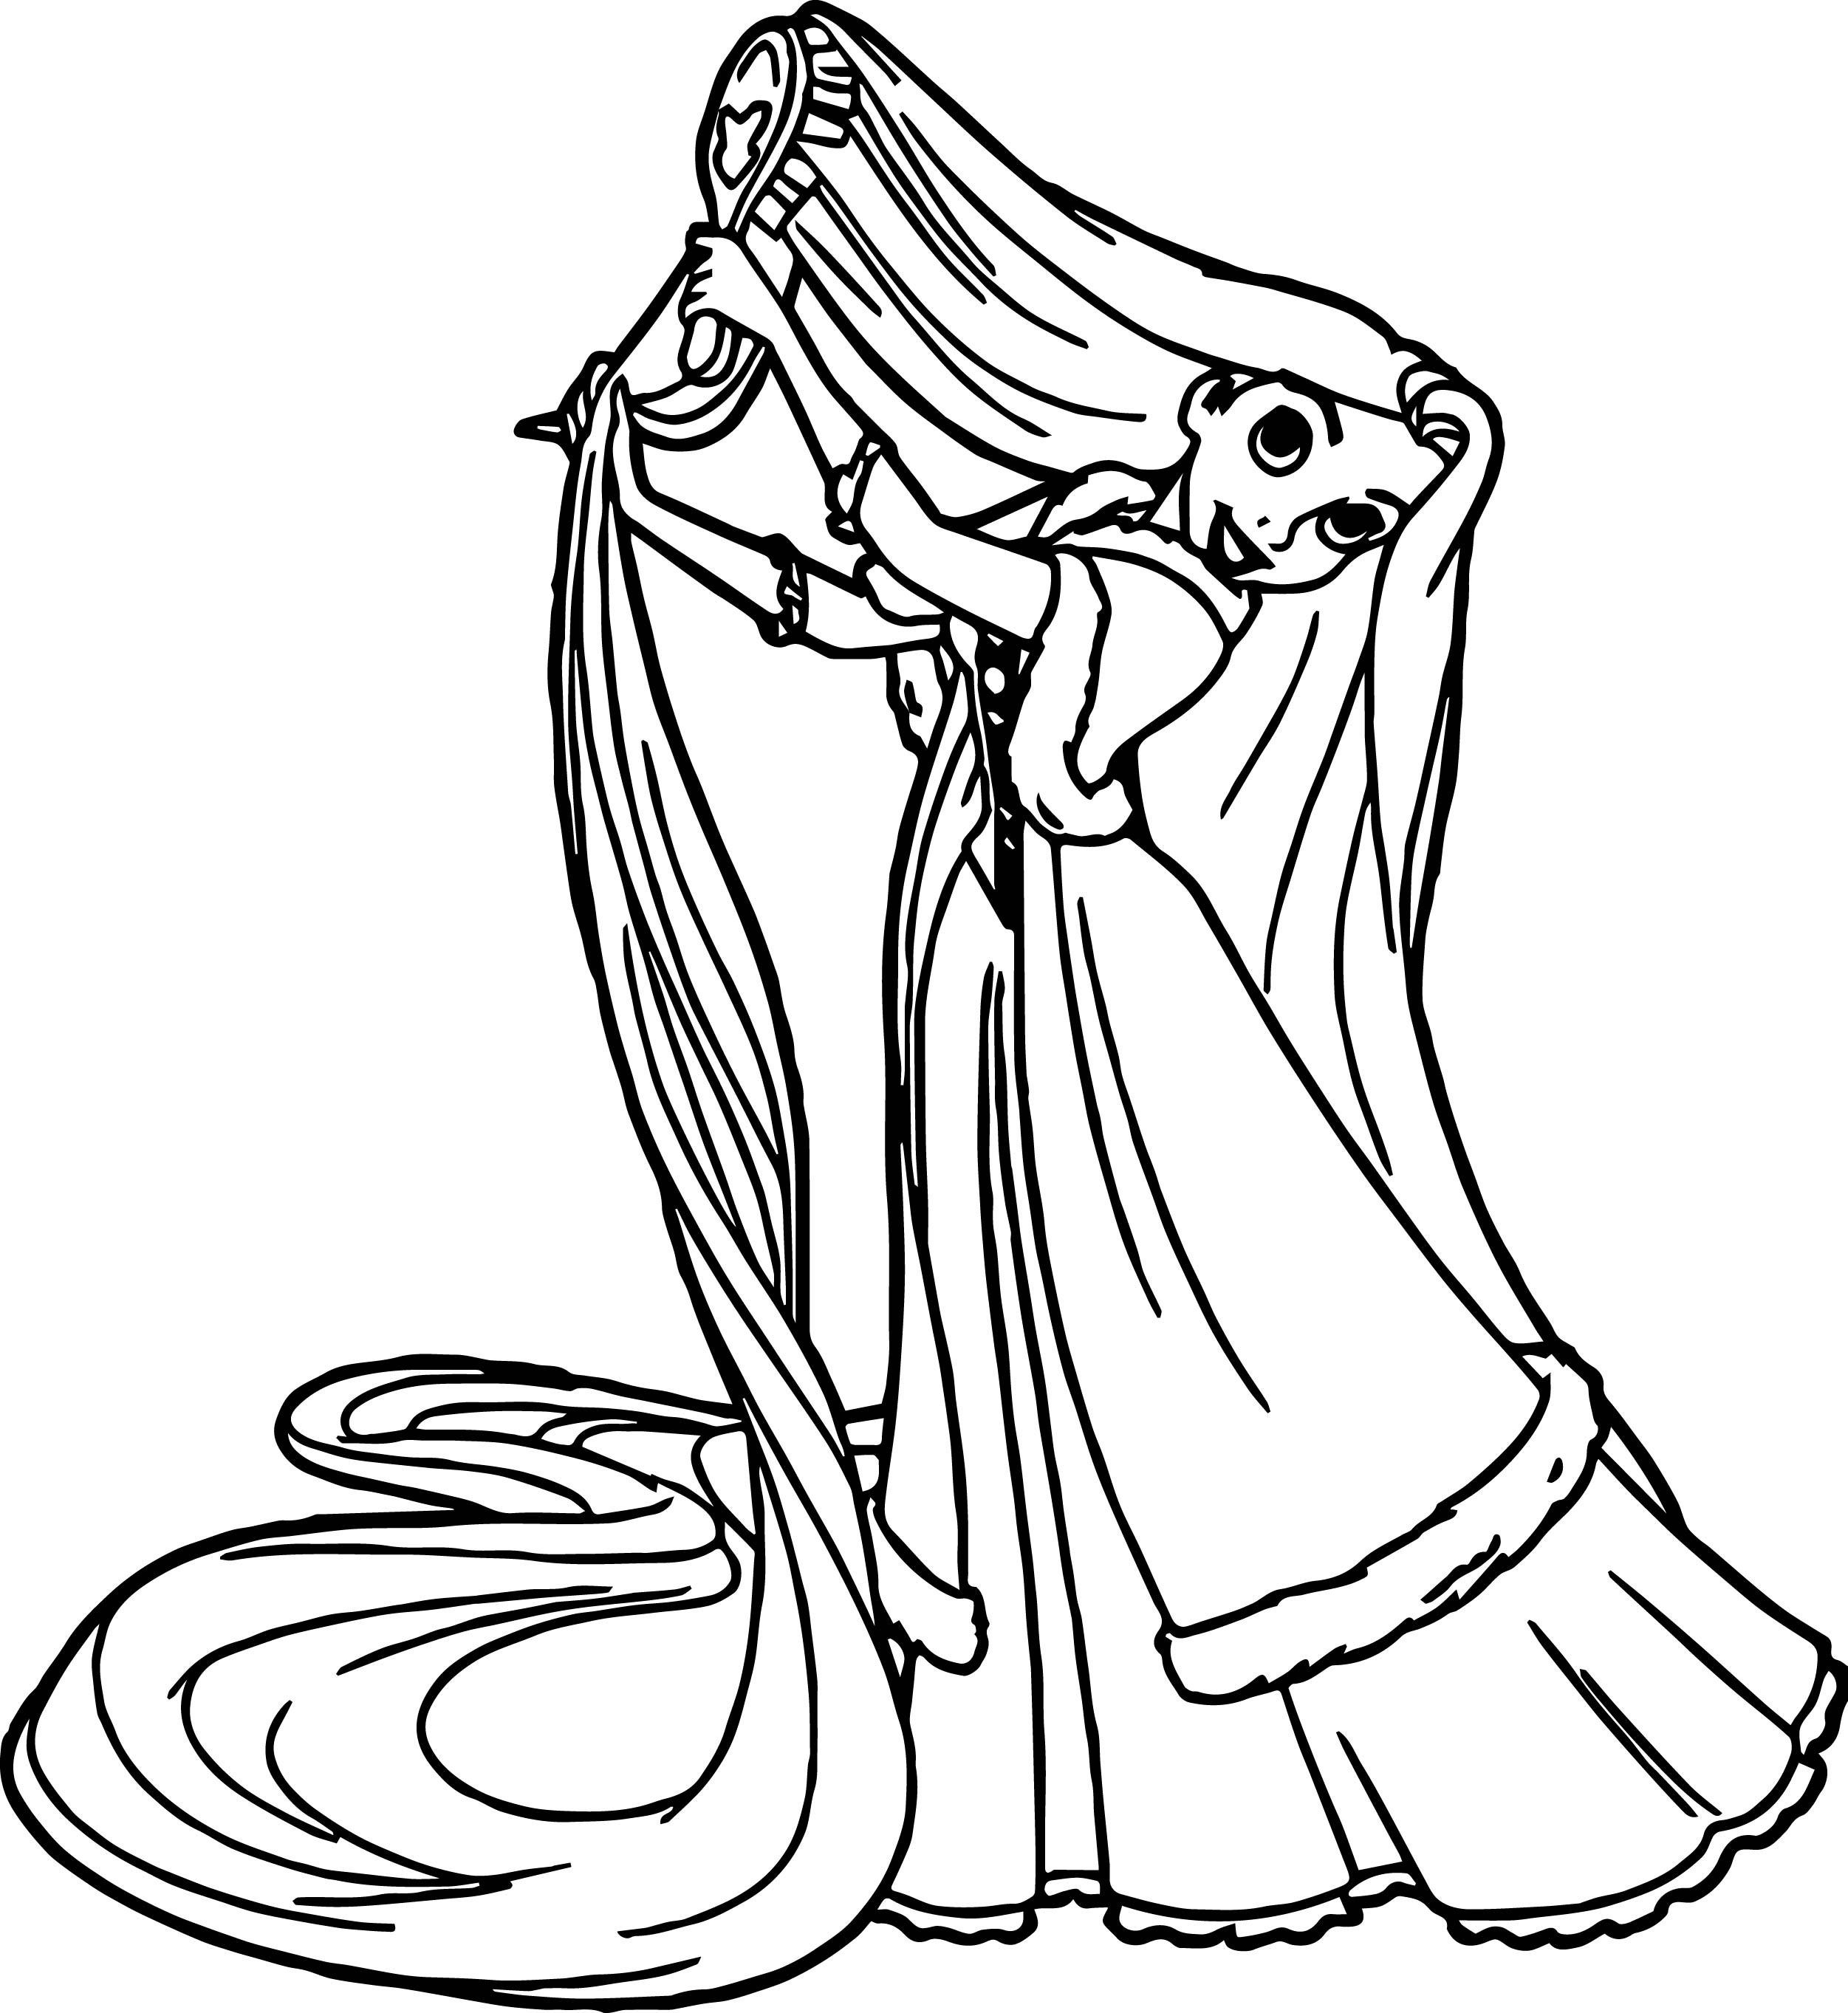 2502x2726 Hair Brush Coloring Page